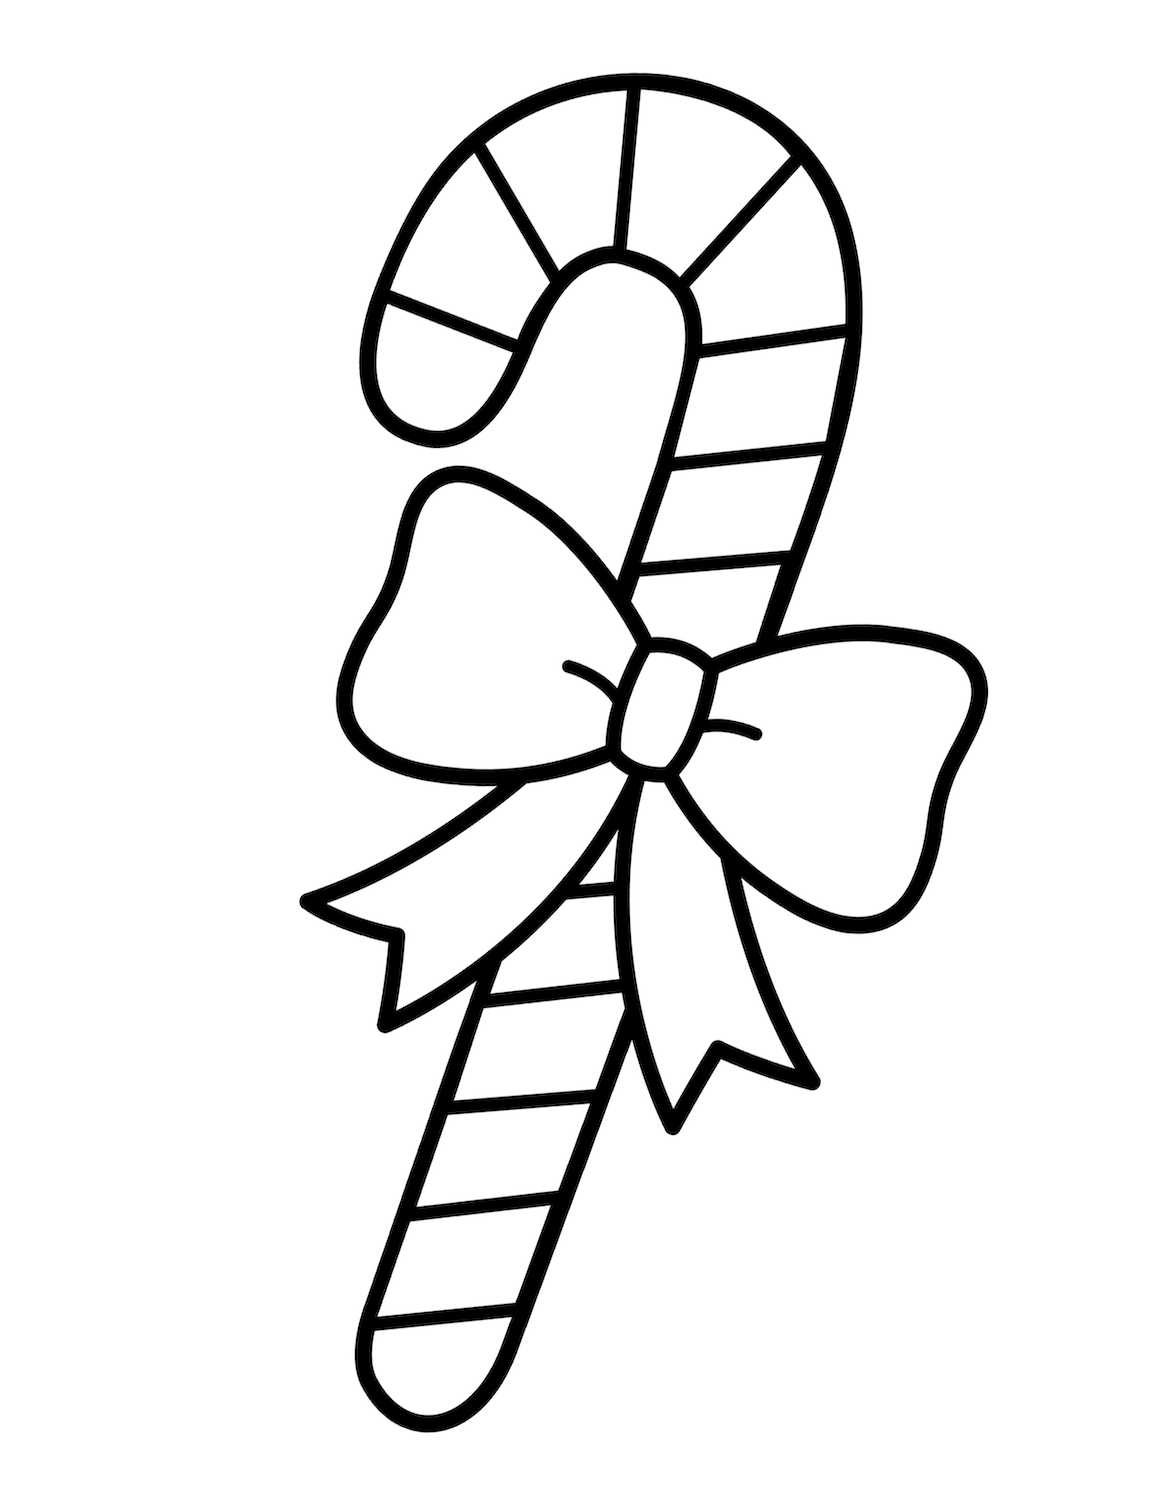 coloring candy cane free printable candy cane coloring pages for kids candy coloring cane